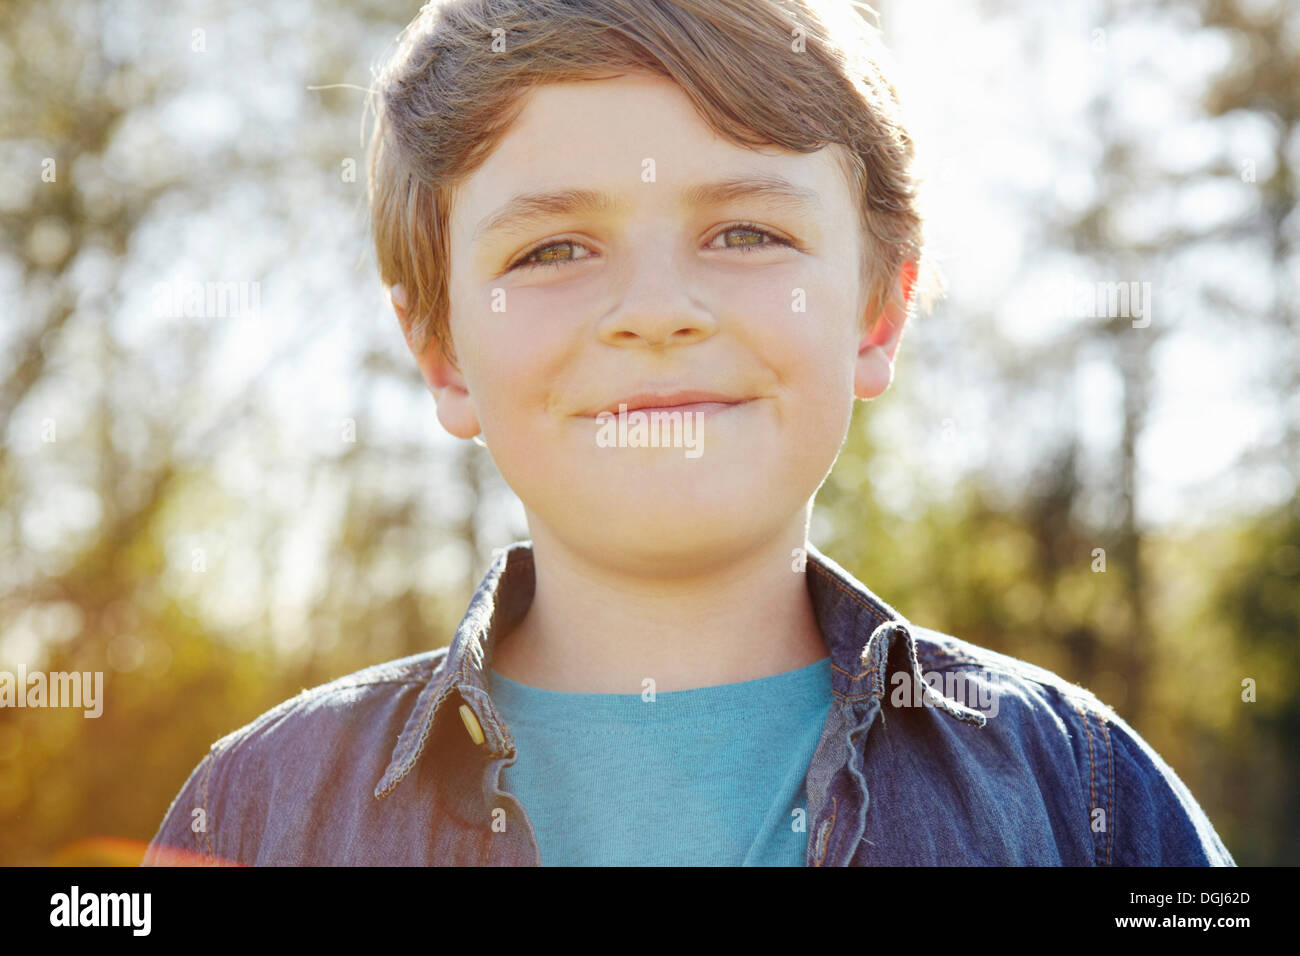 Boy with cheeky grin - Stock Image